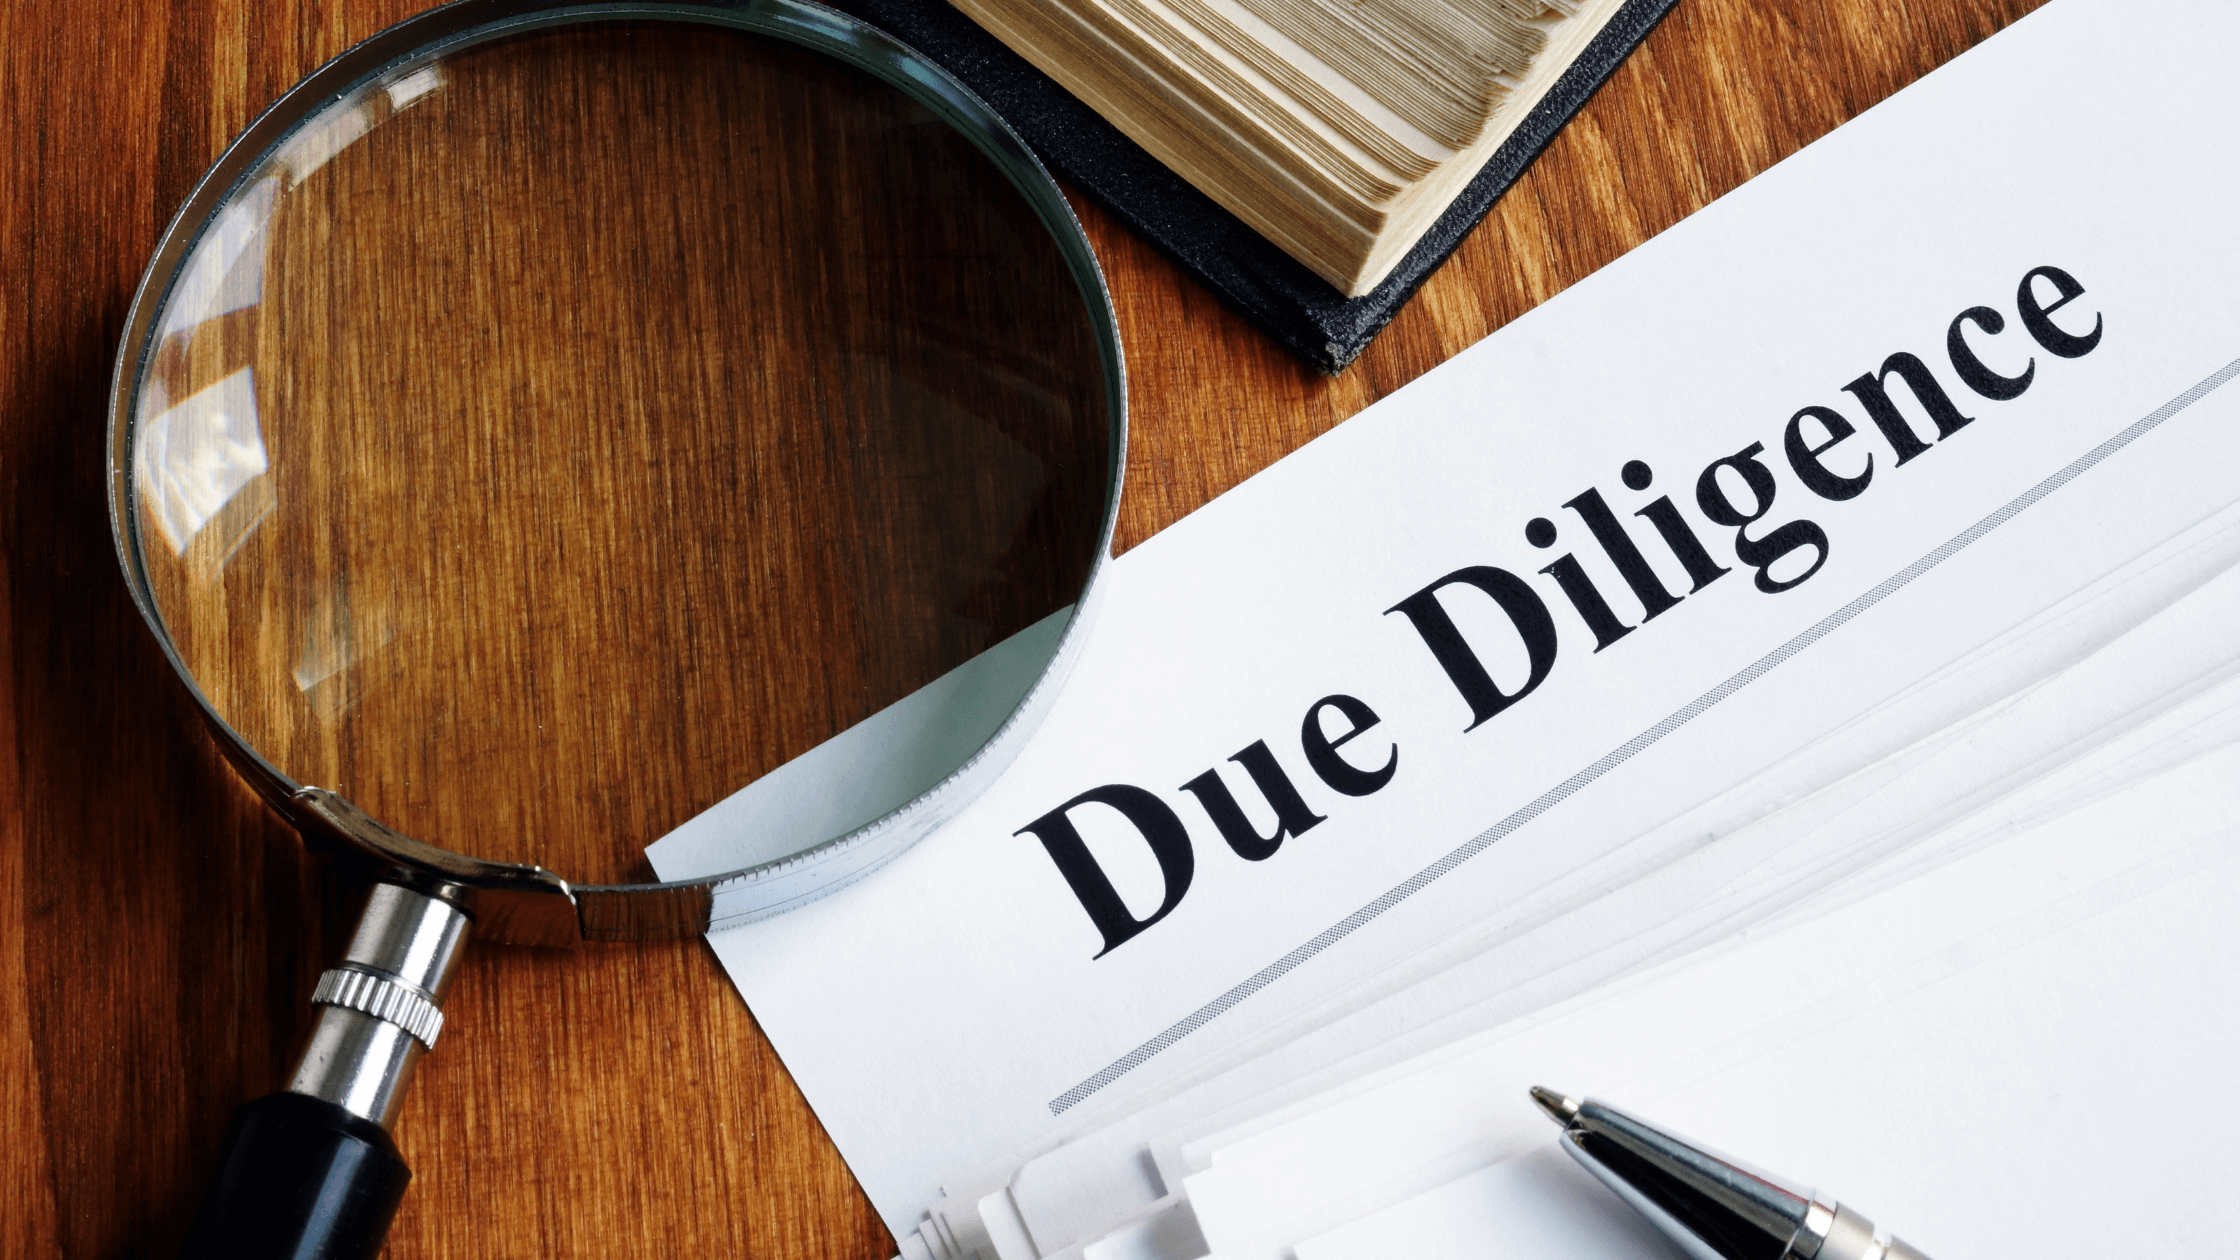 Due diligence as a service: An overview